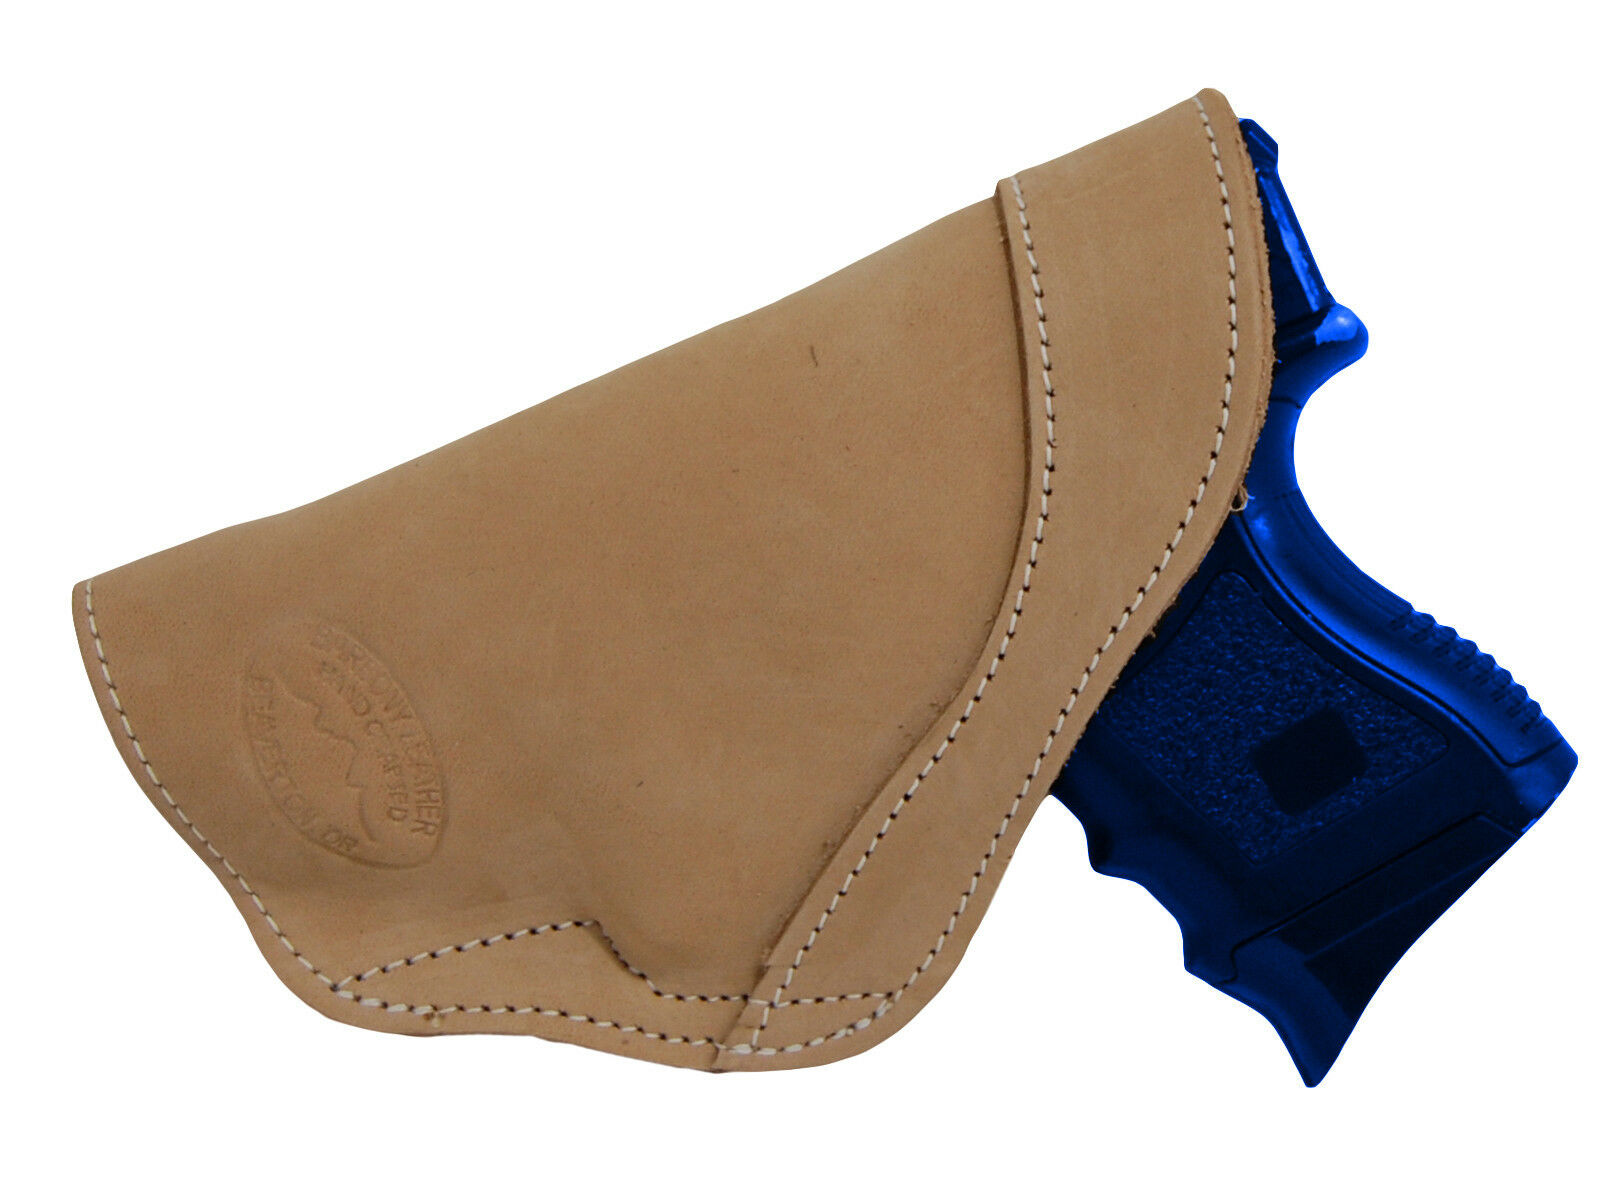 NEW Barsony Tan Leder IWB Holster + Mag Pouch Springfield Compact Compact Springfield 9mm 40 45 2dcc54